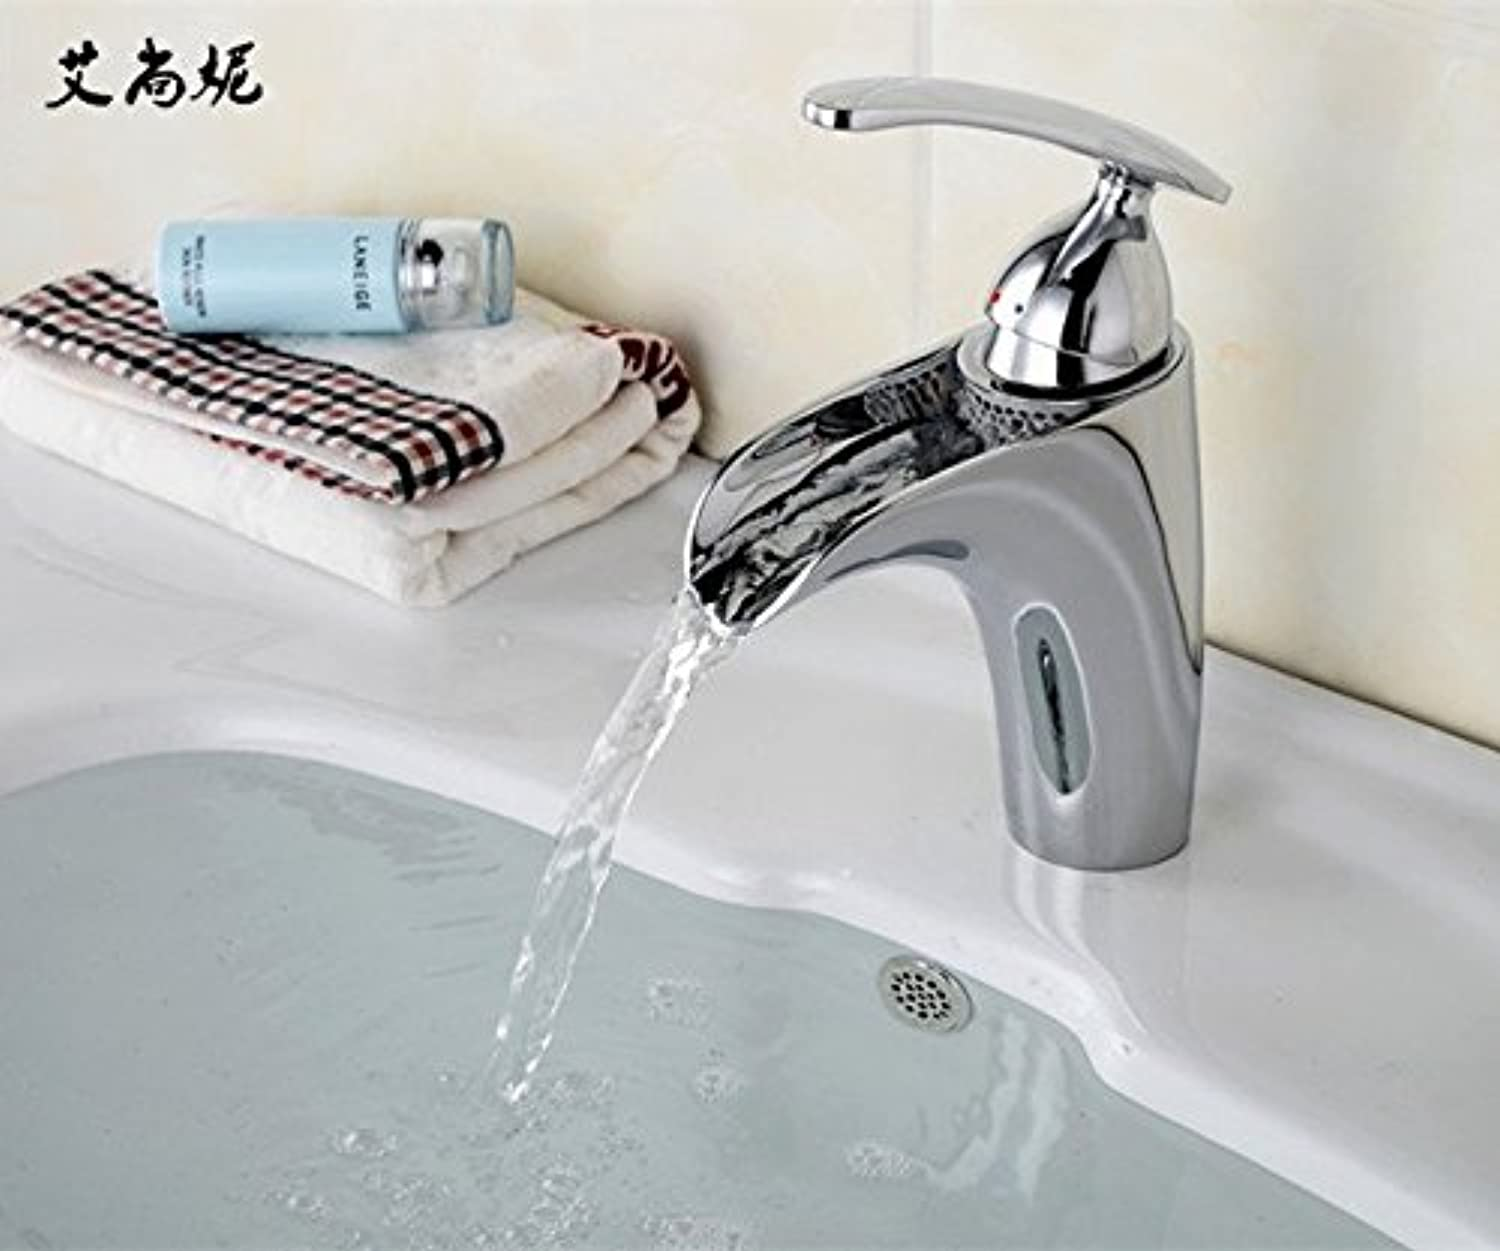 Gyps Faucet Basin Mixer Tap Waterfall Faucet Antique Bathroom Mixer Bar Mixer Shower Set Tap antique bathroom faucet Mr. Sang Ni plated sink faucet waterfall, plated faucets basin mixer,Modern Bath